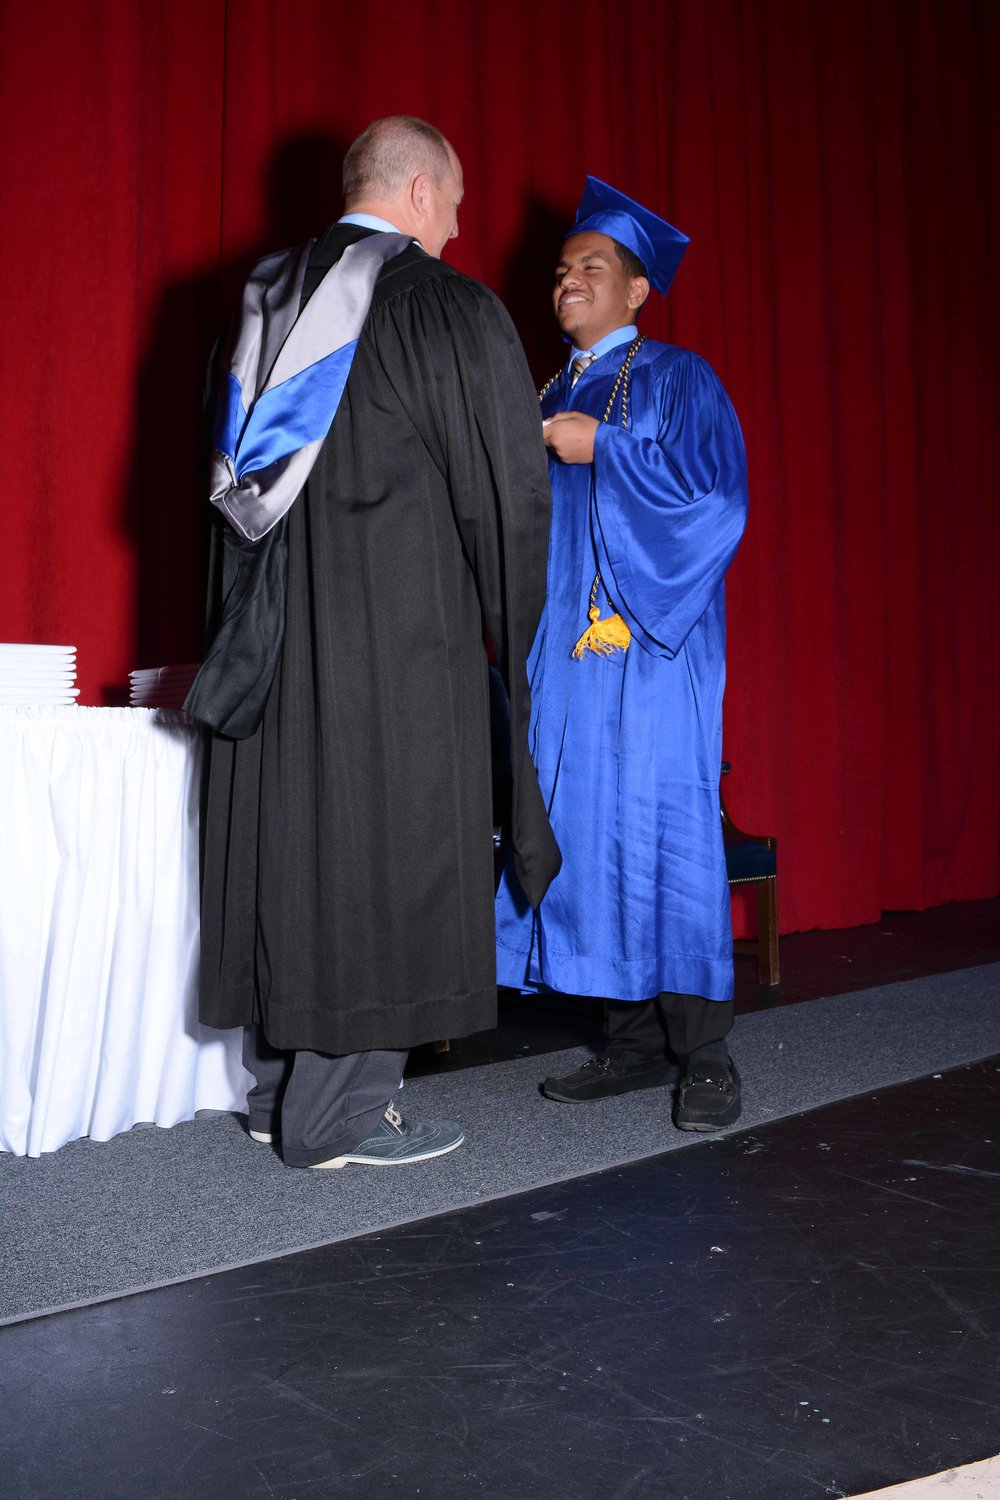 May14 Commencement151.jpg